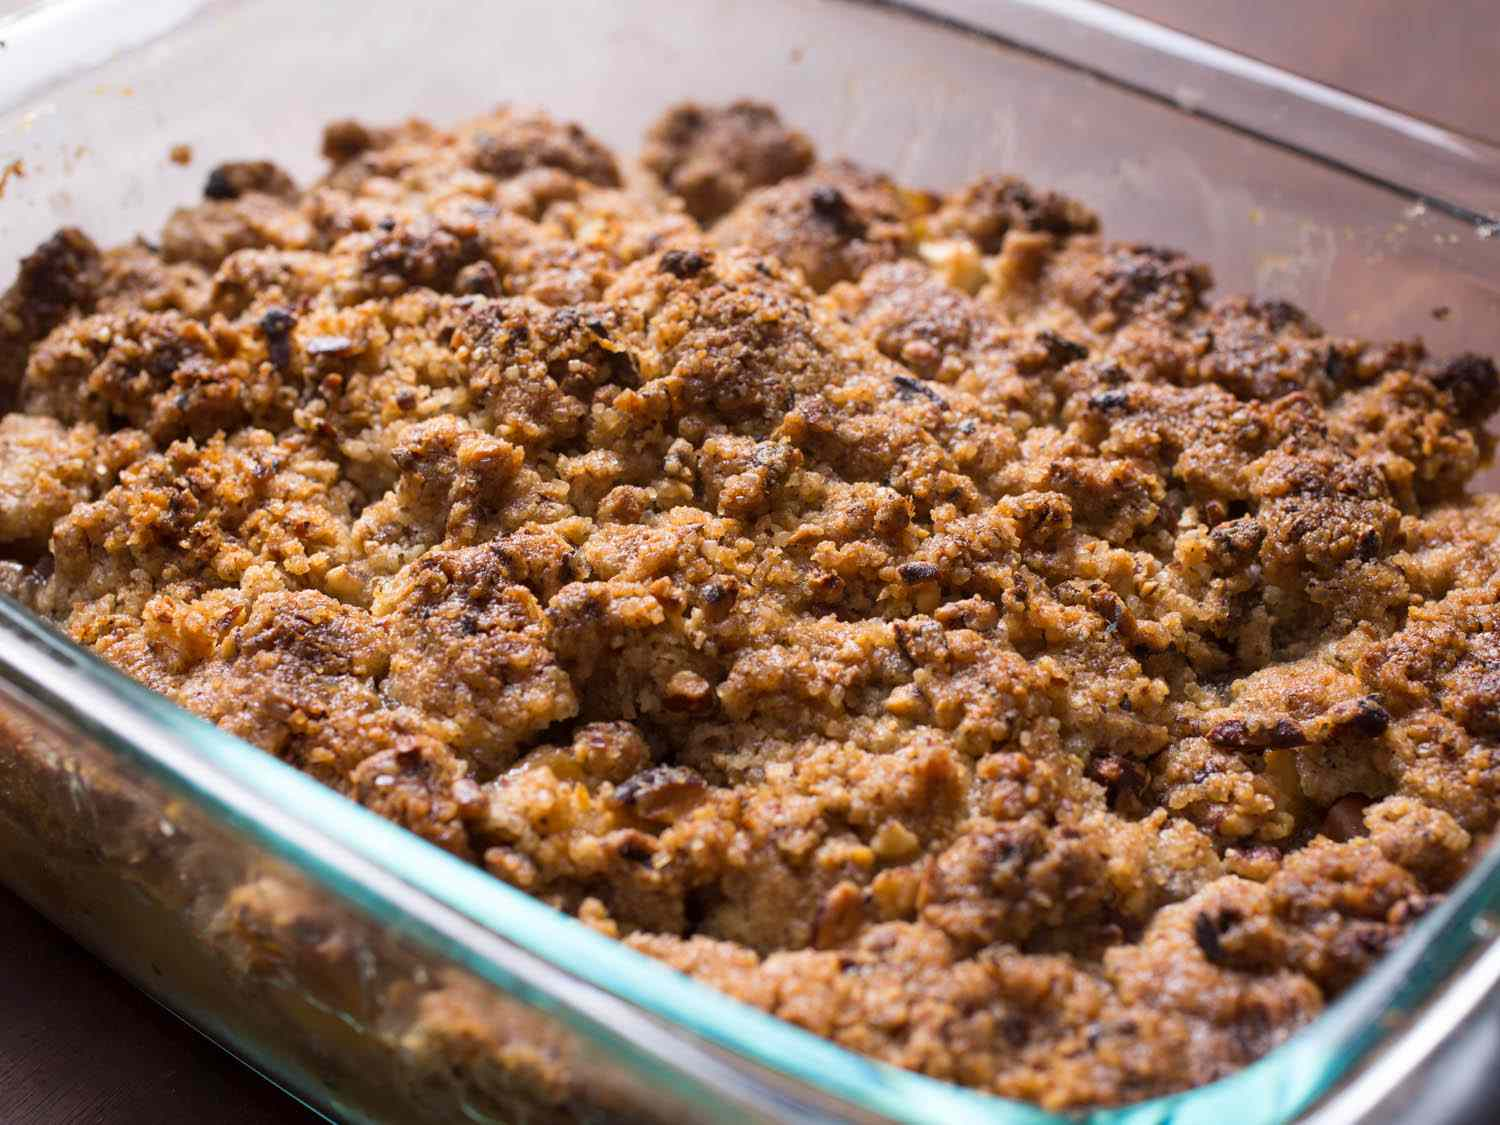 A glass baking dish of apple crisp with a crumble topping